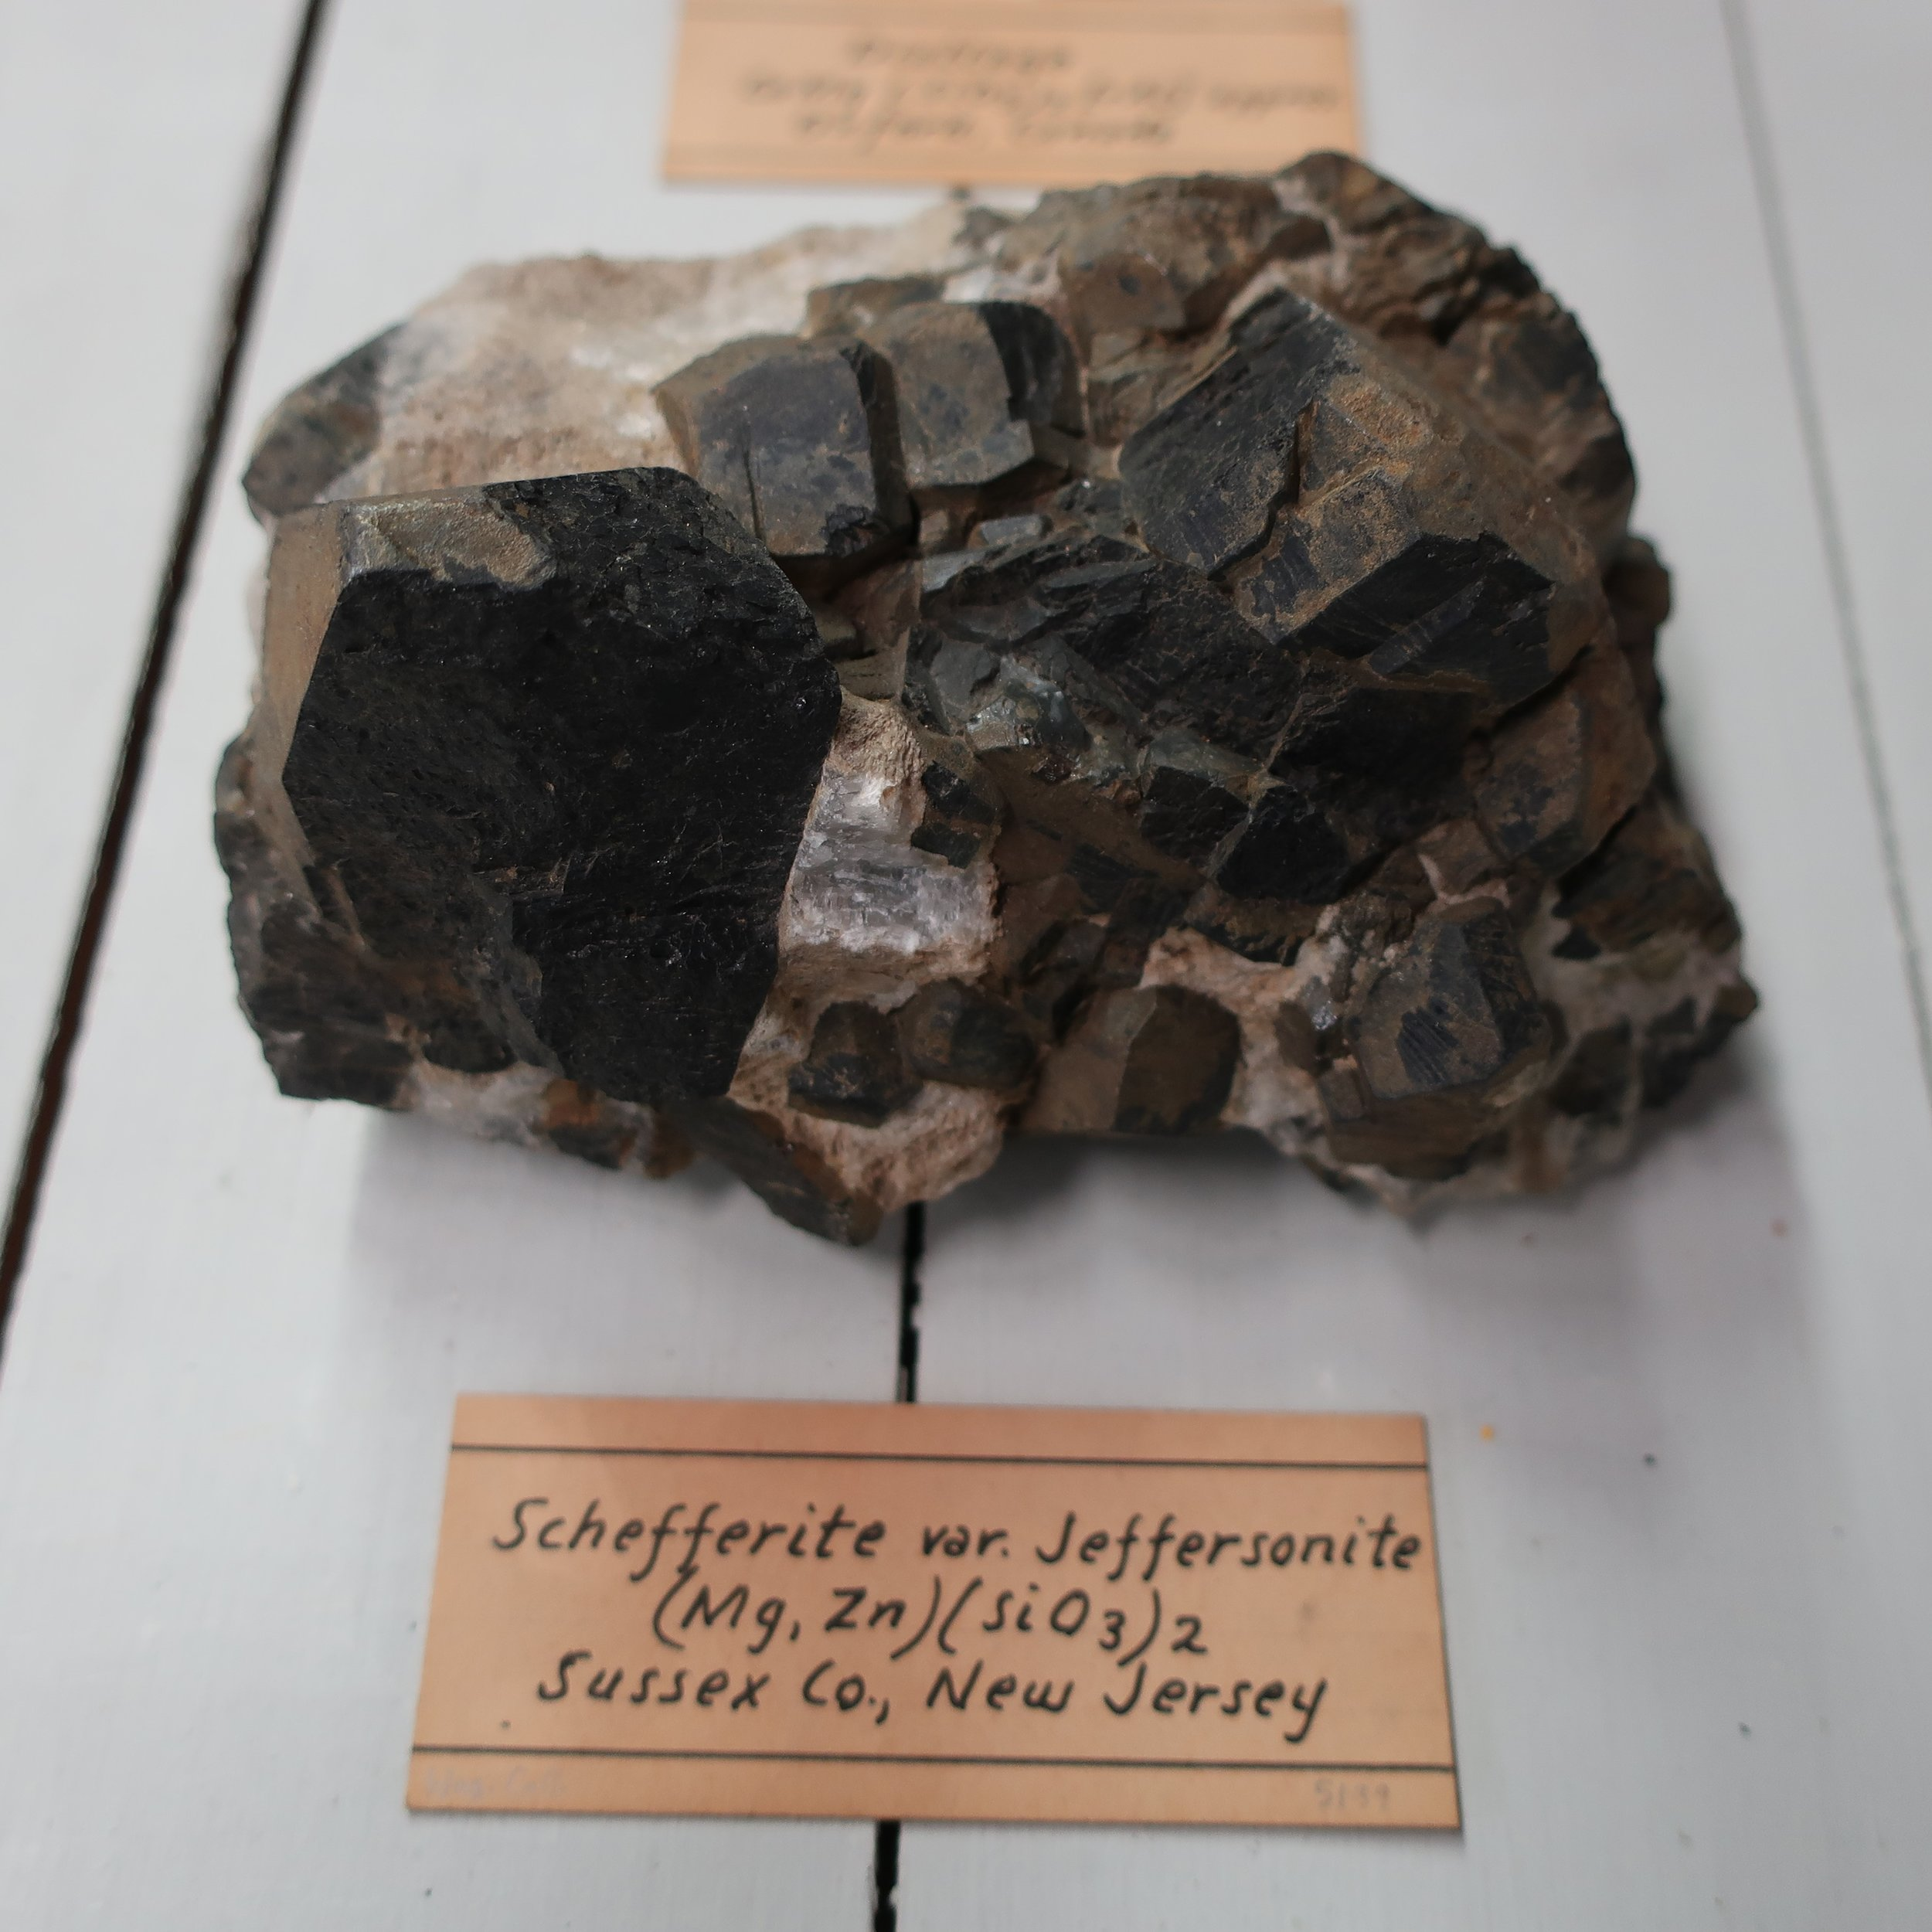 """Jeffersonite  was discovered by Msrs Keating, and Vanuxem of Phil""a from its chemical composition and other characters, they came to the conclusion it was a new species. Dr. Troost instituted a careful comparison between this mineral, and pyroxene, as to its crystaline forms, and has shewn, that its crystals, correspond precisely with the latter, and it is now classed as a variety of Pyroxene, in the systems. It contains Silica 56. Lime 15. Manganeese 13. Iron 10. Sp. Gr. 3.5. It is found in large foliated masses, sometimes a foot in length, and in groups of large, and well defined crystals, from 2 to 6 in. in diameter, usually of a dark olive green colour, passing to brown. It occurs with Franklinite & Garnet at Franklin Sussex Coy N Jersey."""